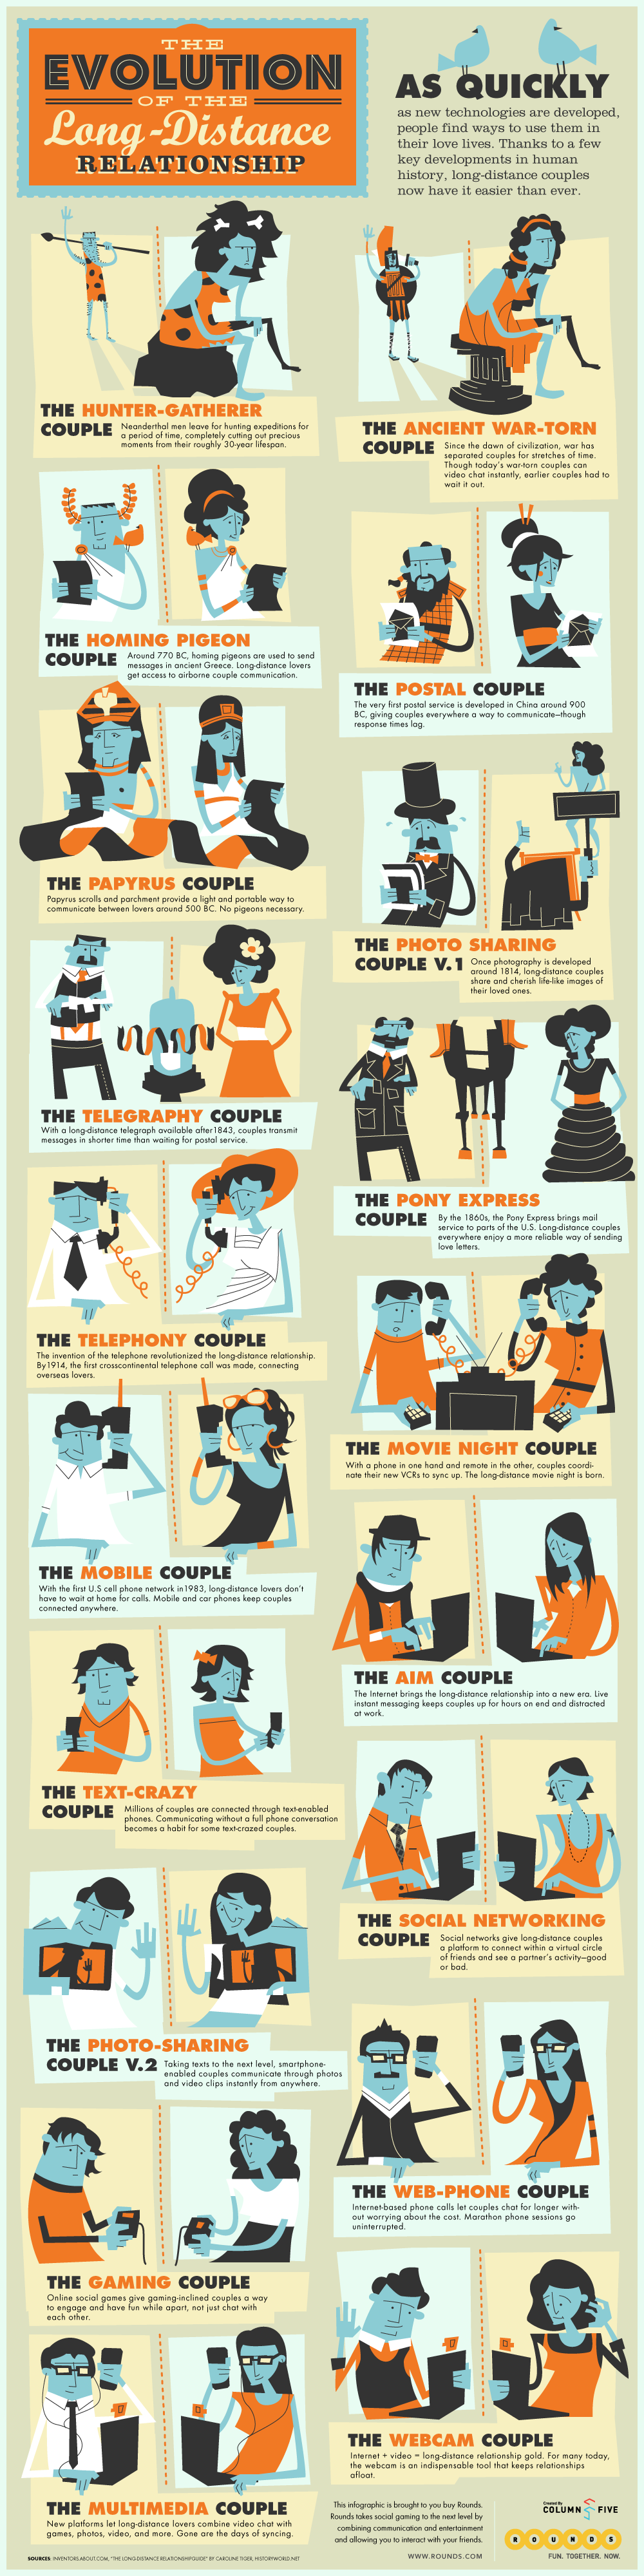 The evolution of long-distance relationships in social media